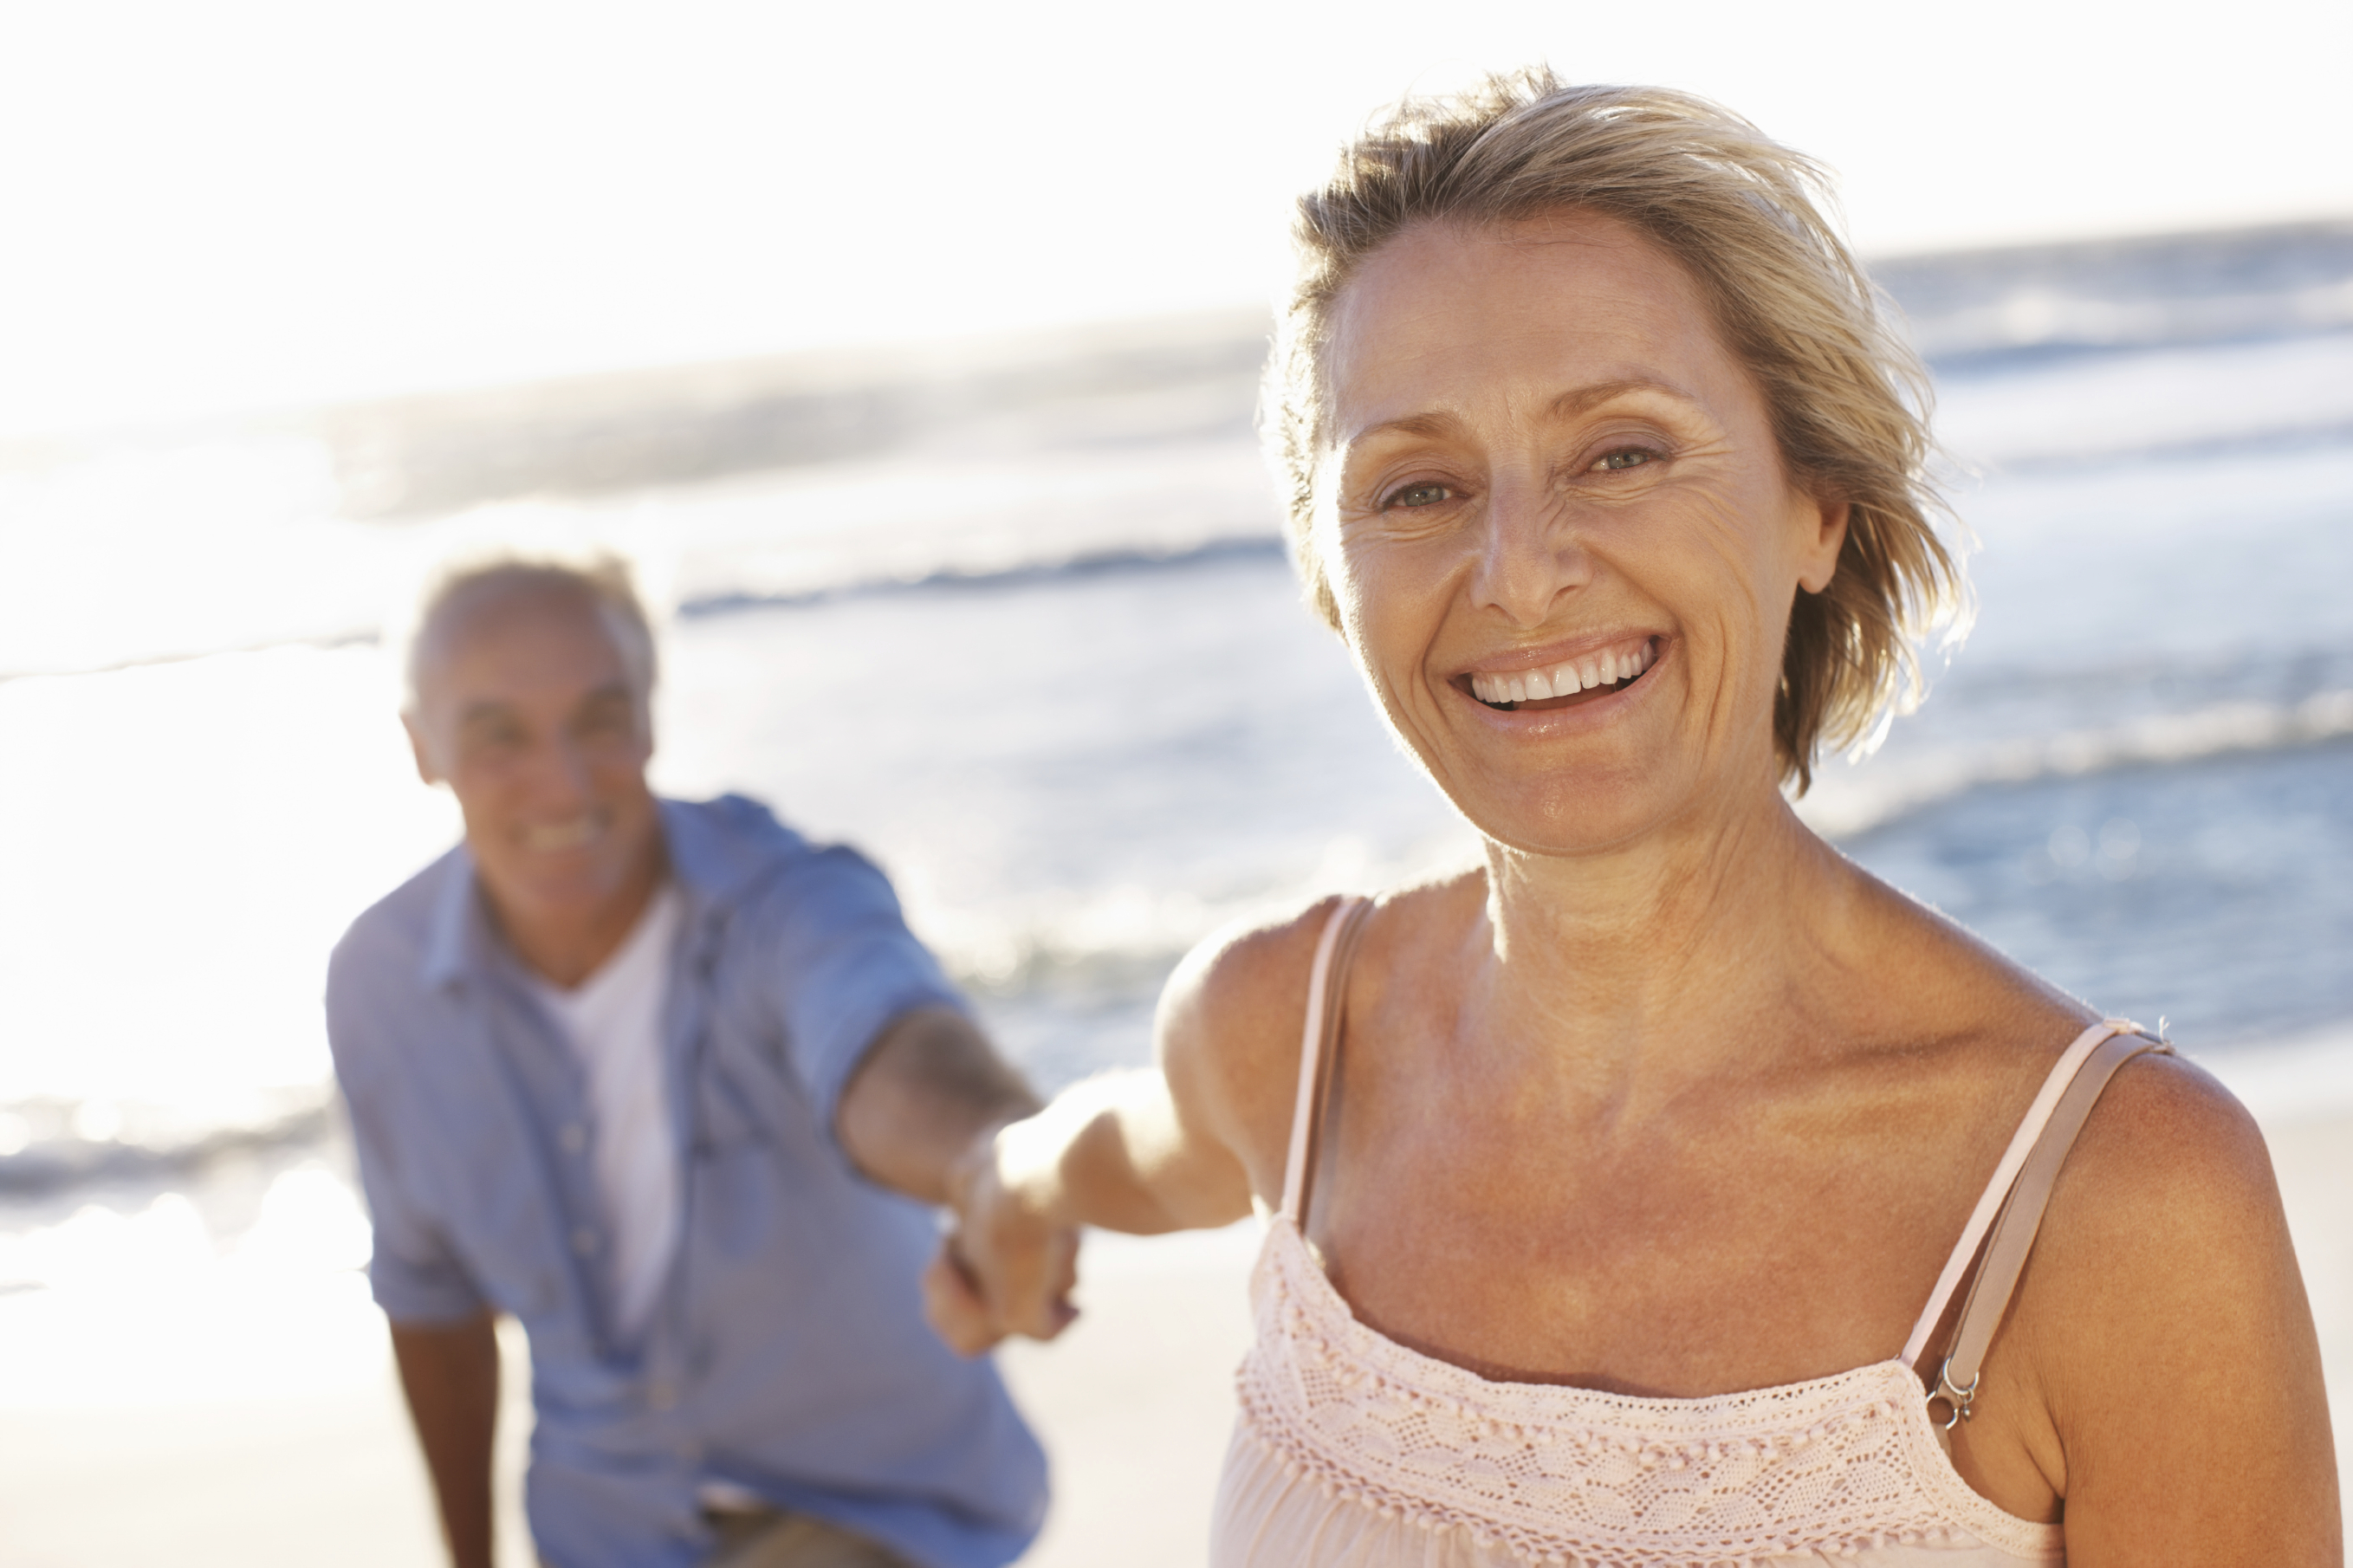 Older woman smiling at camera holding hands with man on a beach